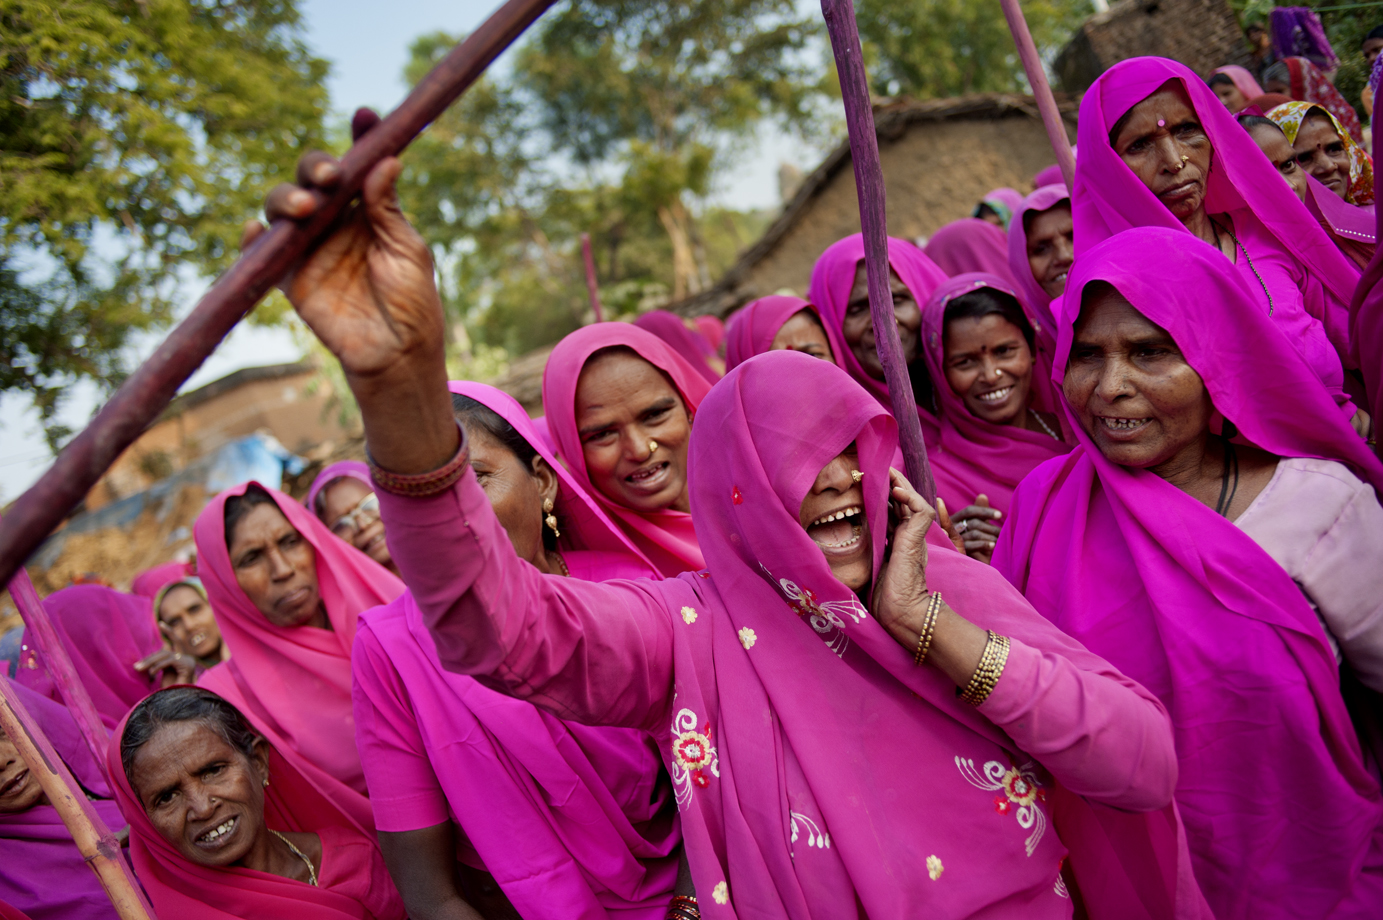 Gulabi gang, a response to widespread domestic abuse and other violence against women, Uttar Pradesh / India - 2011